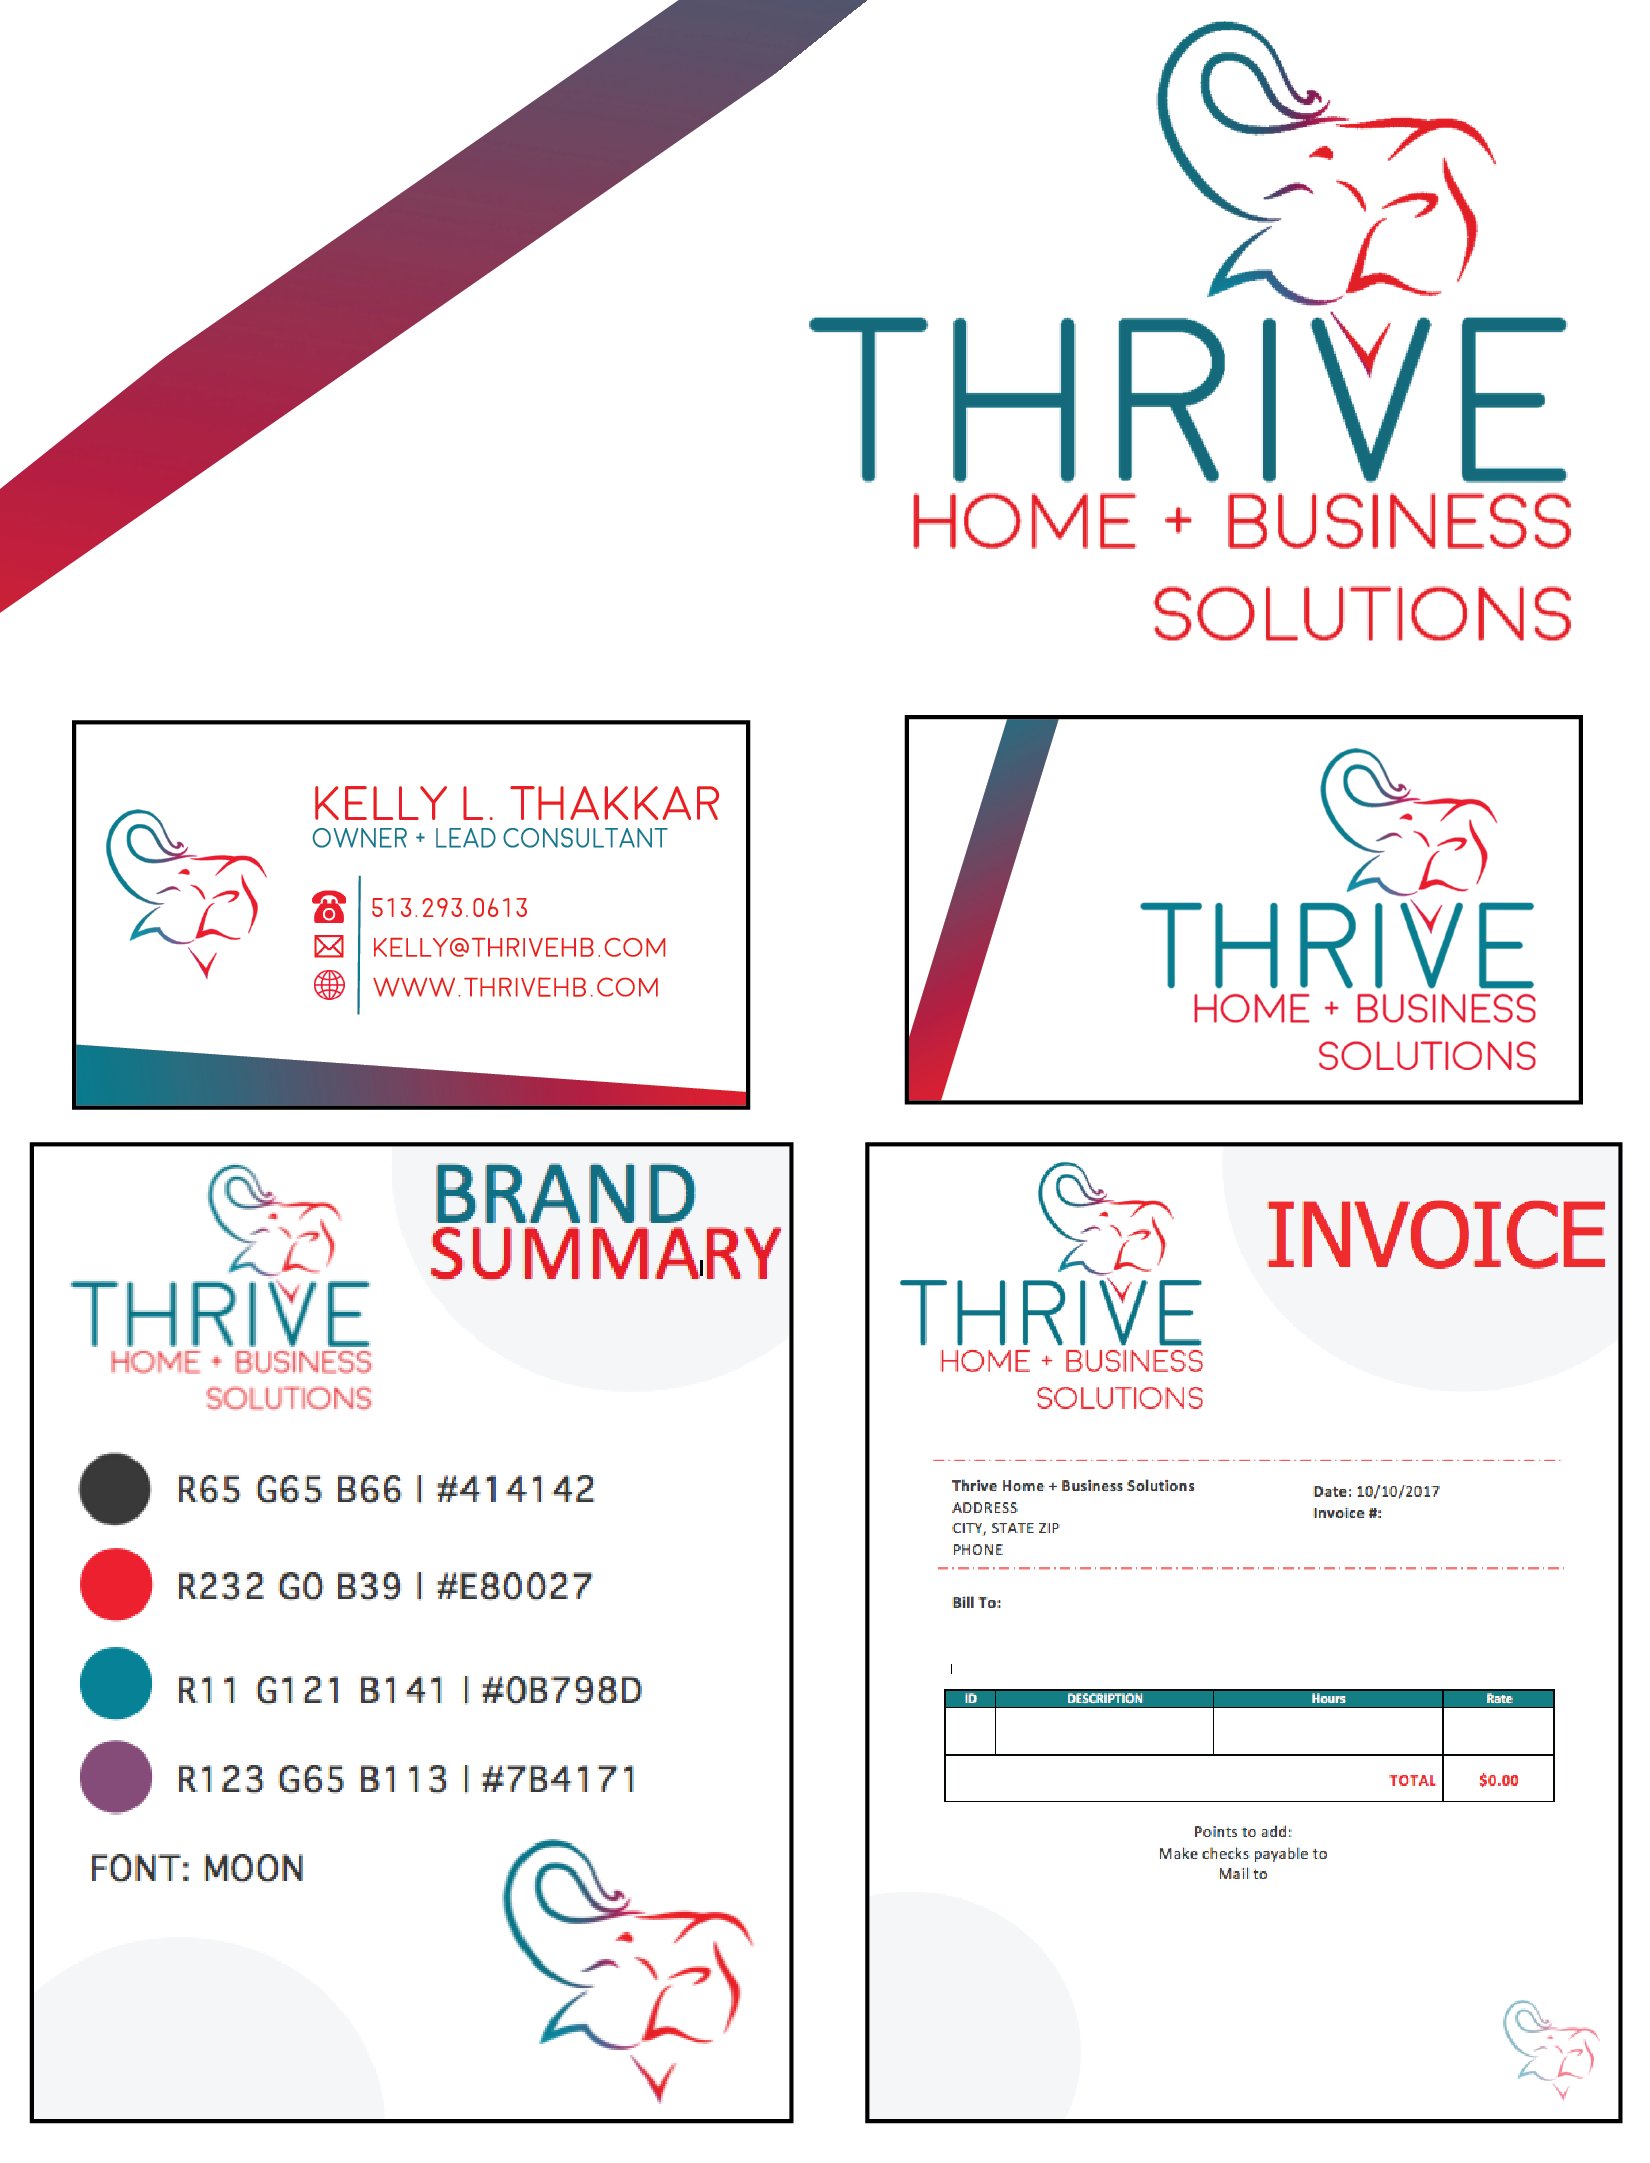 THRIVE HB CONSULTING START-UP - SUNNY SCENES DEVELOPED LOGO, BUSINESS CARDS, BRAND SUMMARY, INVOICES, AND VARIOUS OTHER PRINT-BASED MARKETING MATERIALS